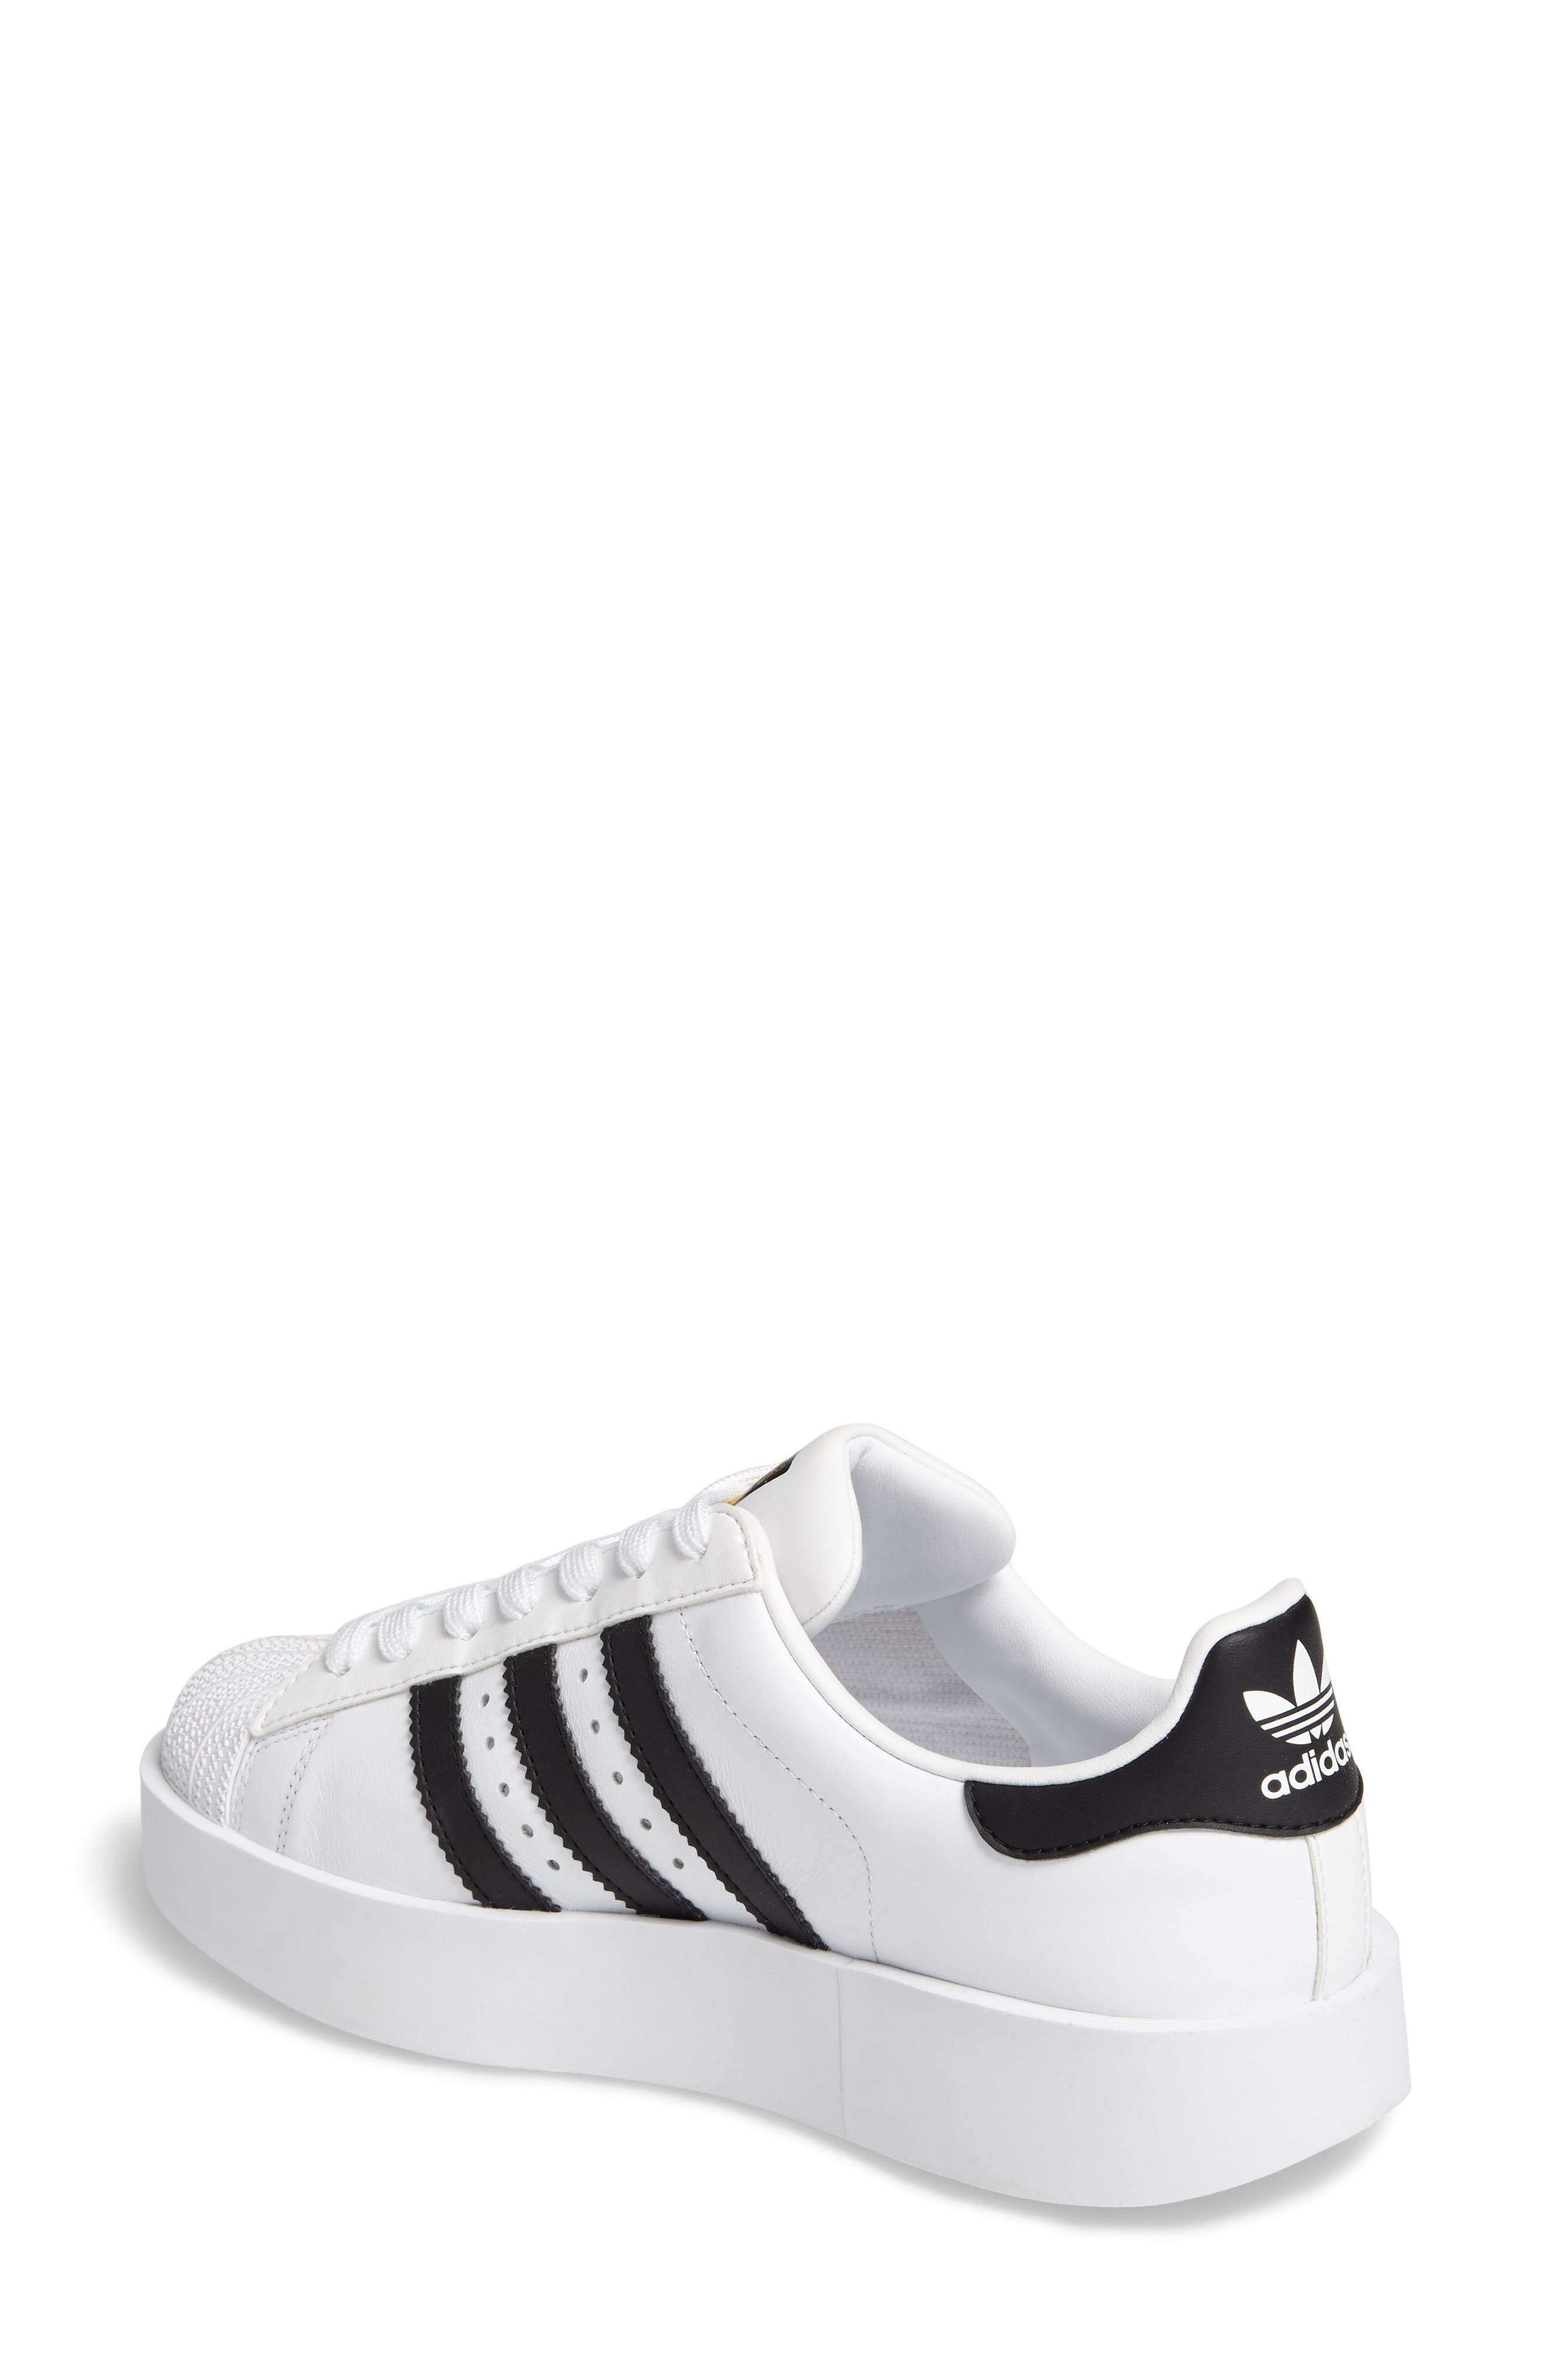 Alternate Image 2  - adidas Superstar Bold Platform Sneaker (Women)